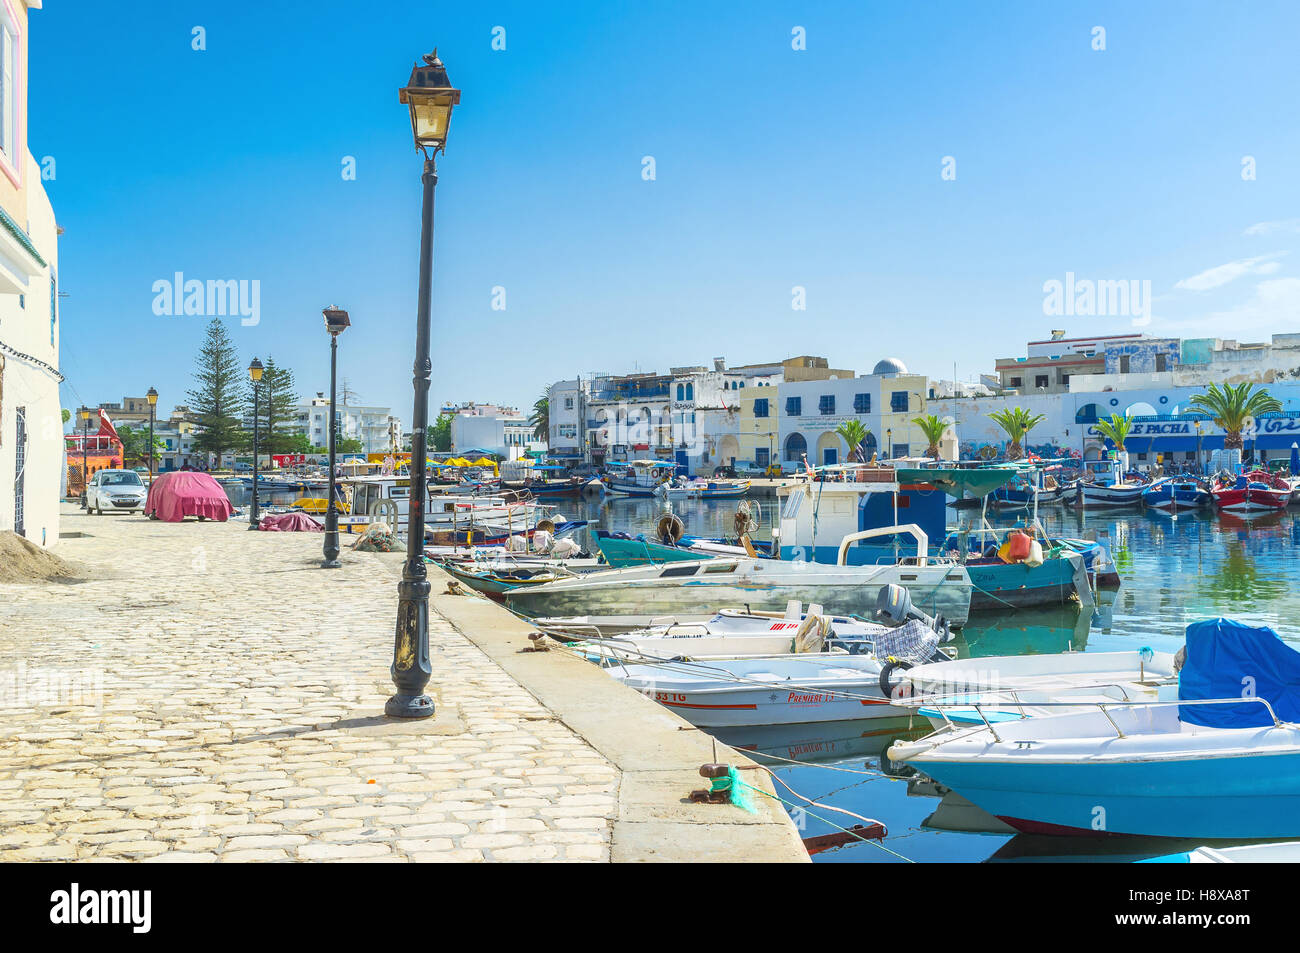 The best way to feel the spirit of Bizerte is to walk in the old port - Stock Image